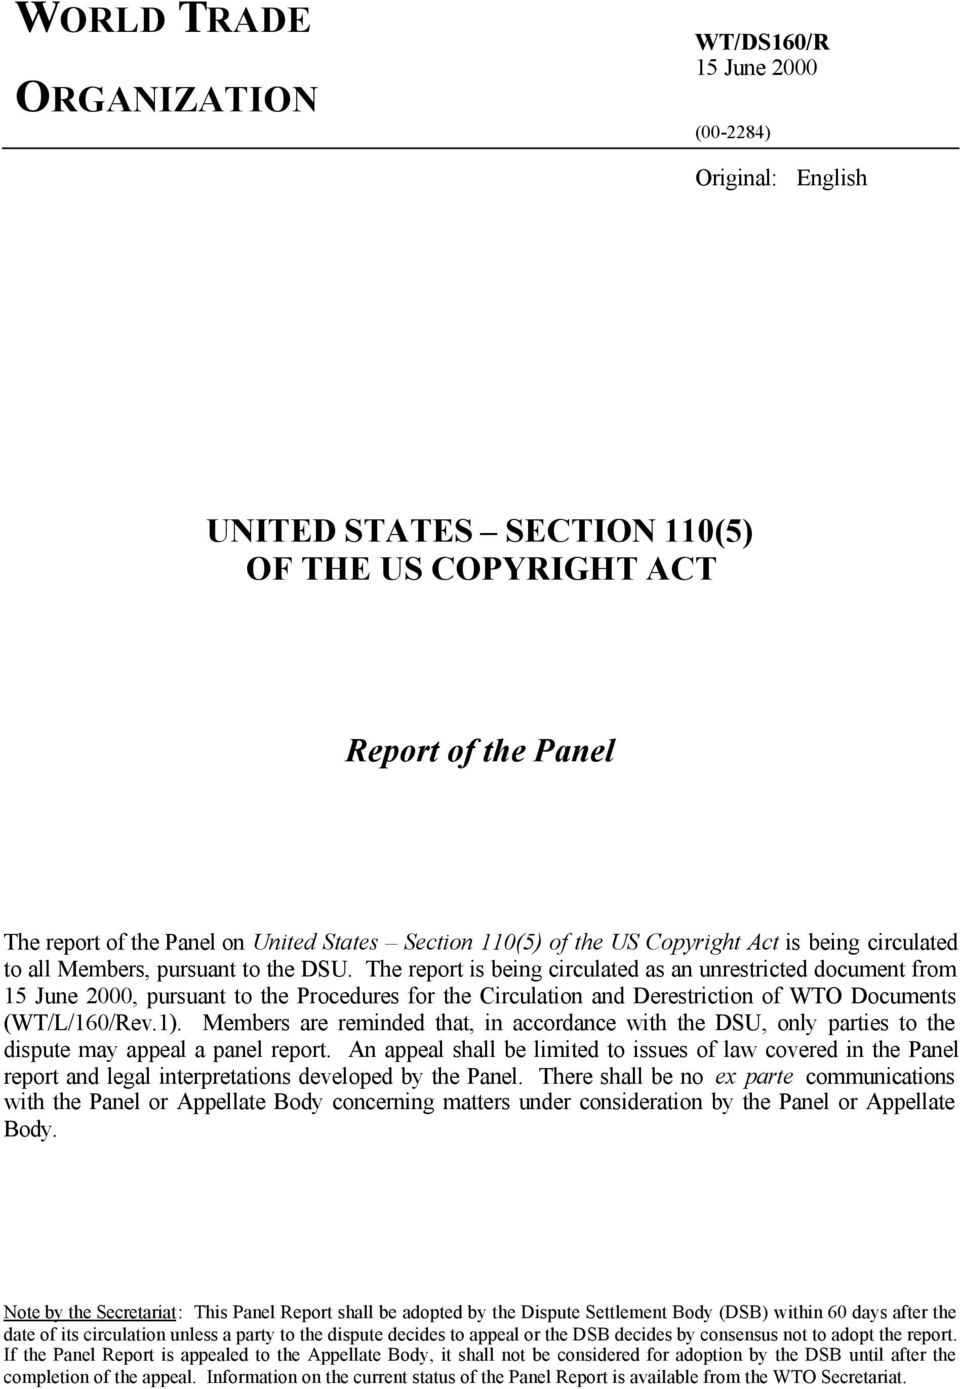 The report is being circulated as an unrestricted document from 15 June 2000, pursuant to the Procedures for the Circulation and Derestriction of WTO Documents (WT/L/160/Rev.1).